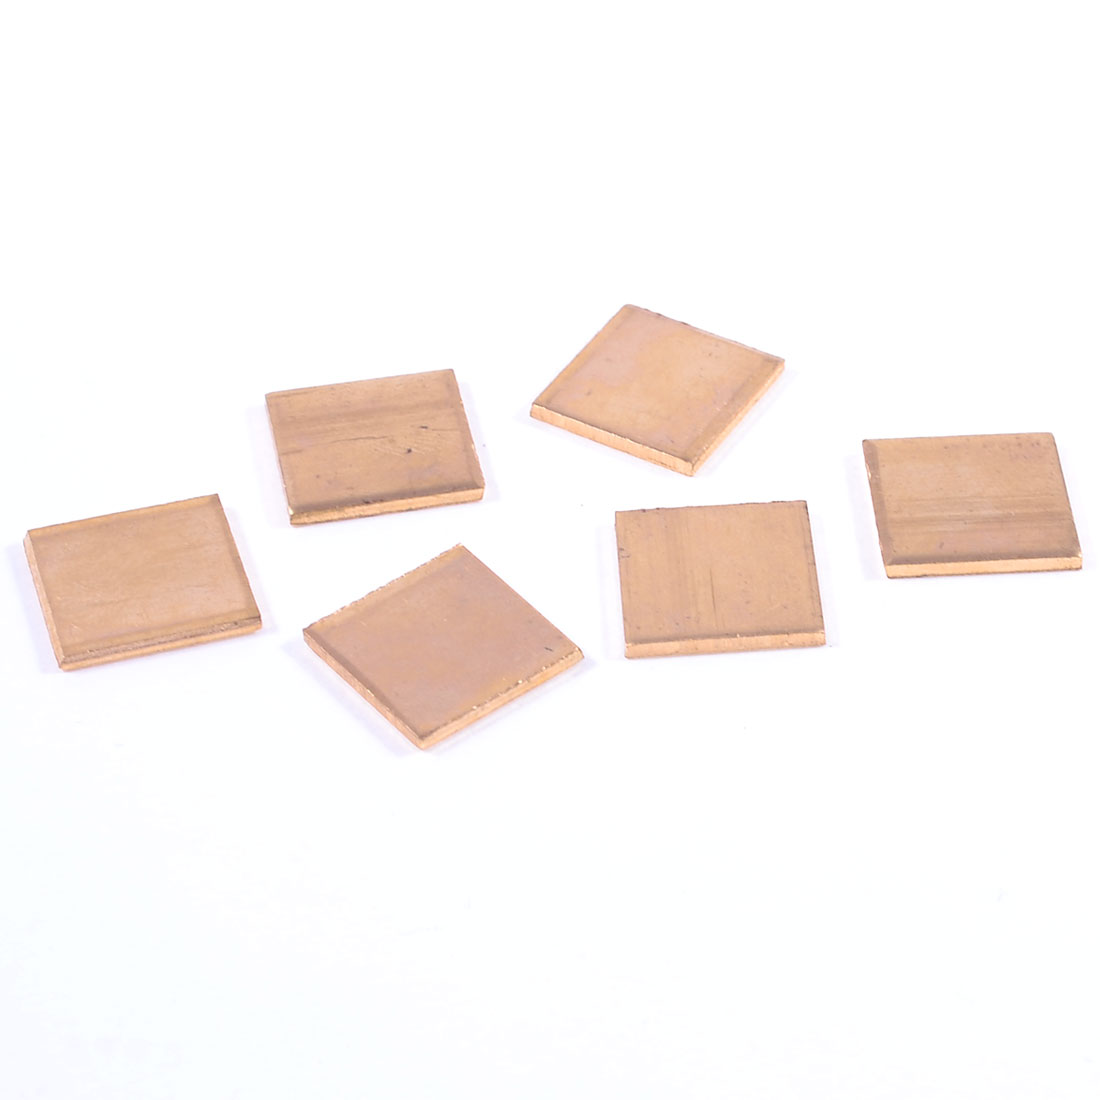 15mm x 15mm x 1.5mm Notebook Laptop GPU CPU Heatsink Copper Pad 6 Pcs